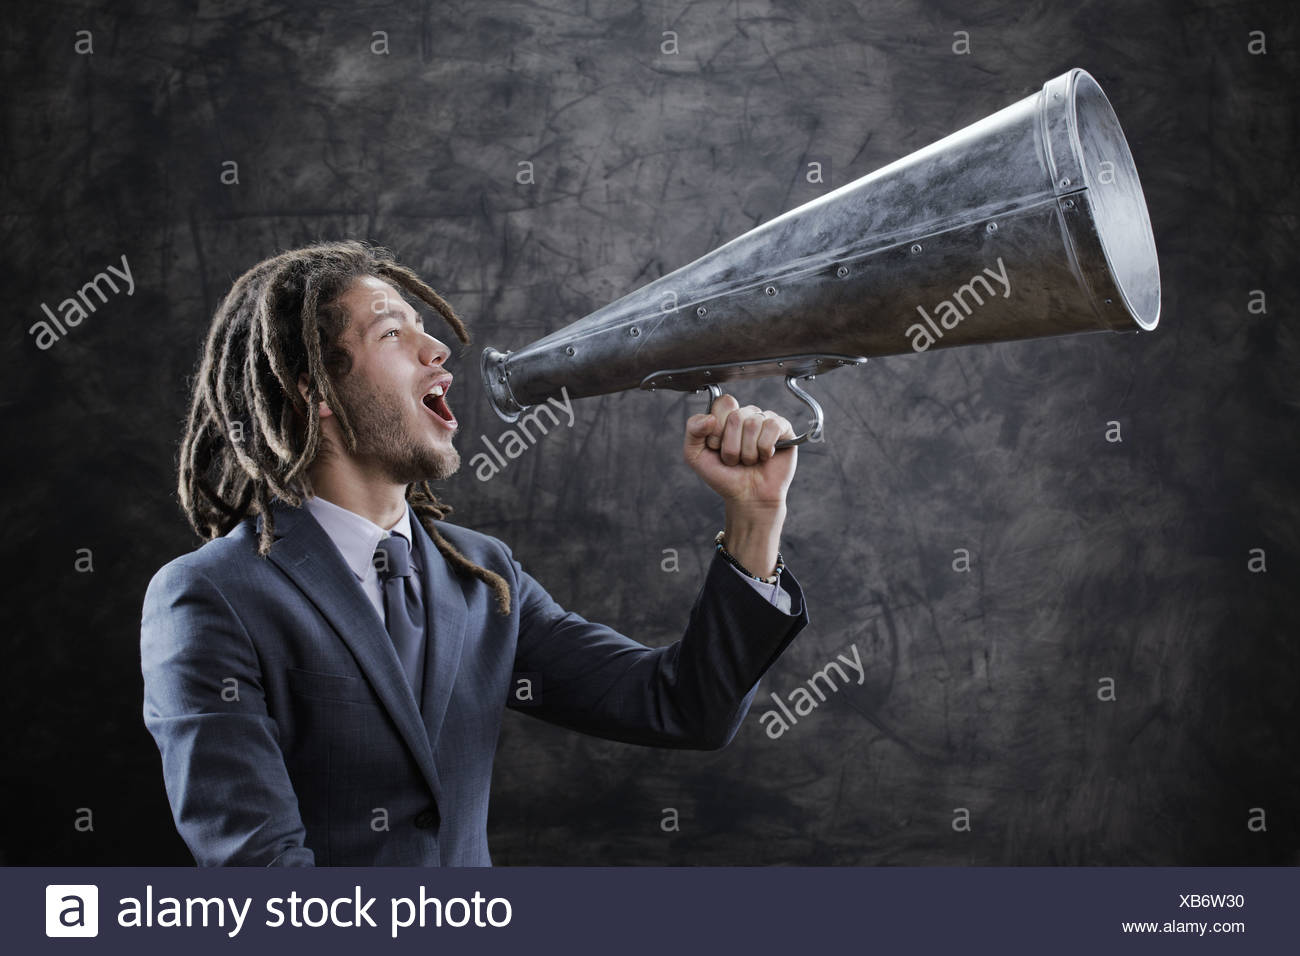 Cris dans megaphone Photo Stock